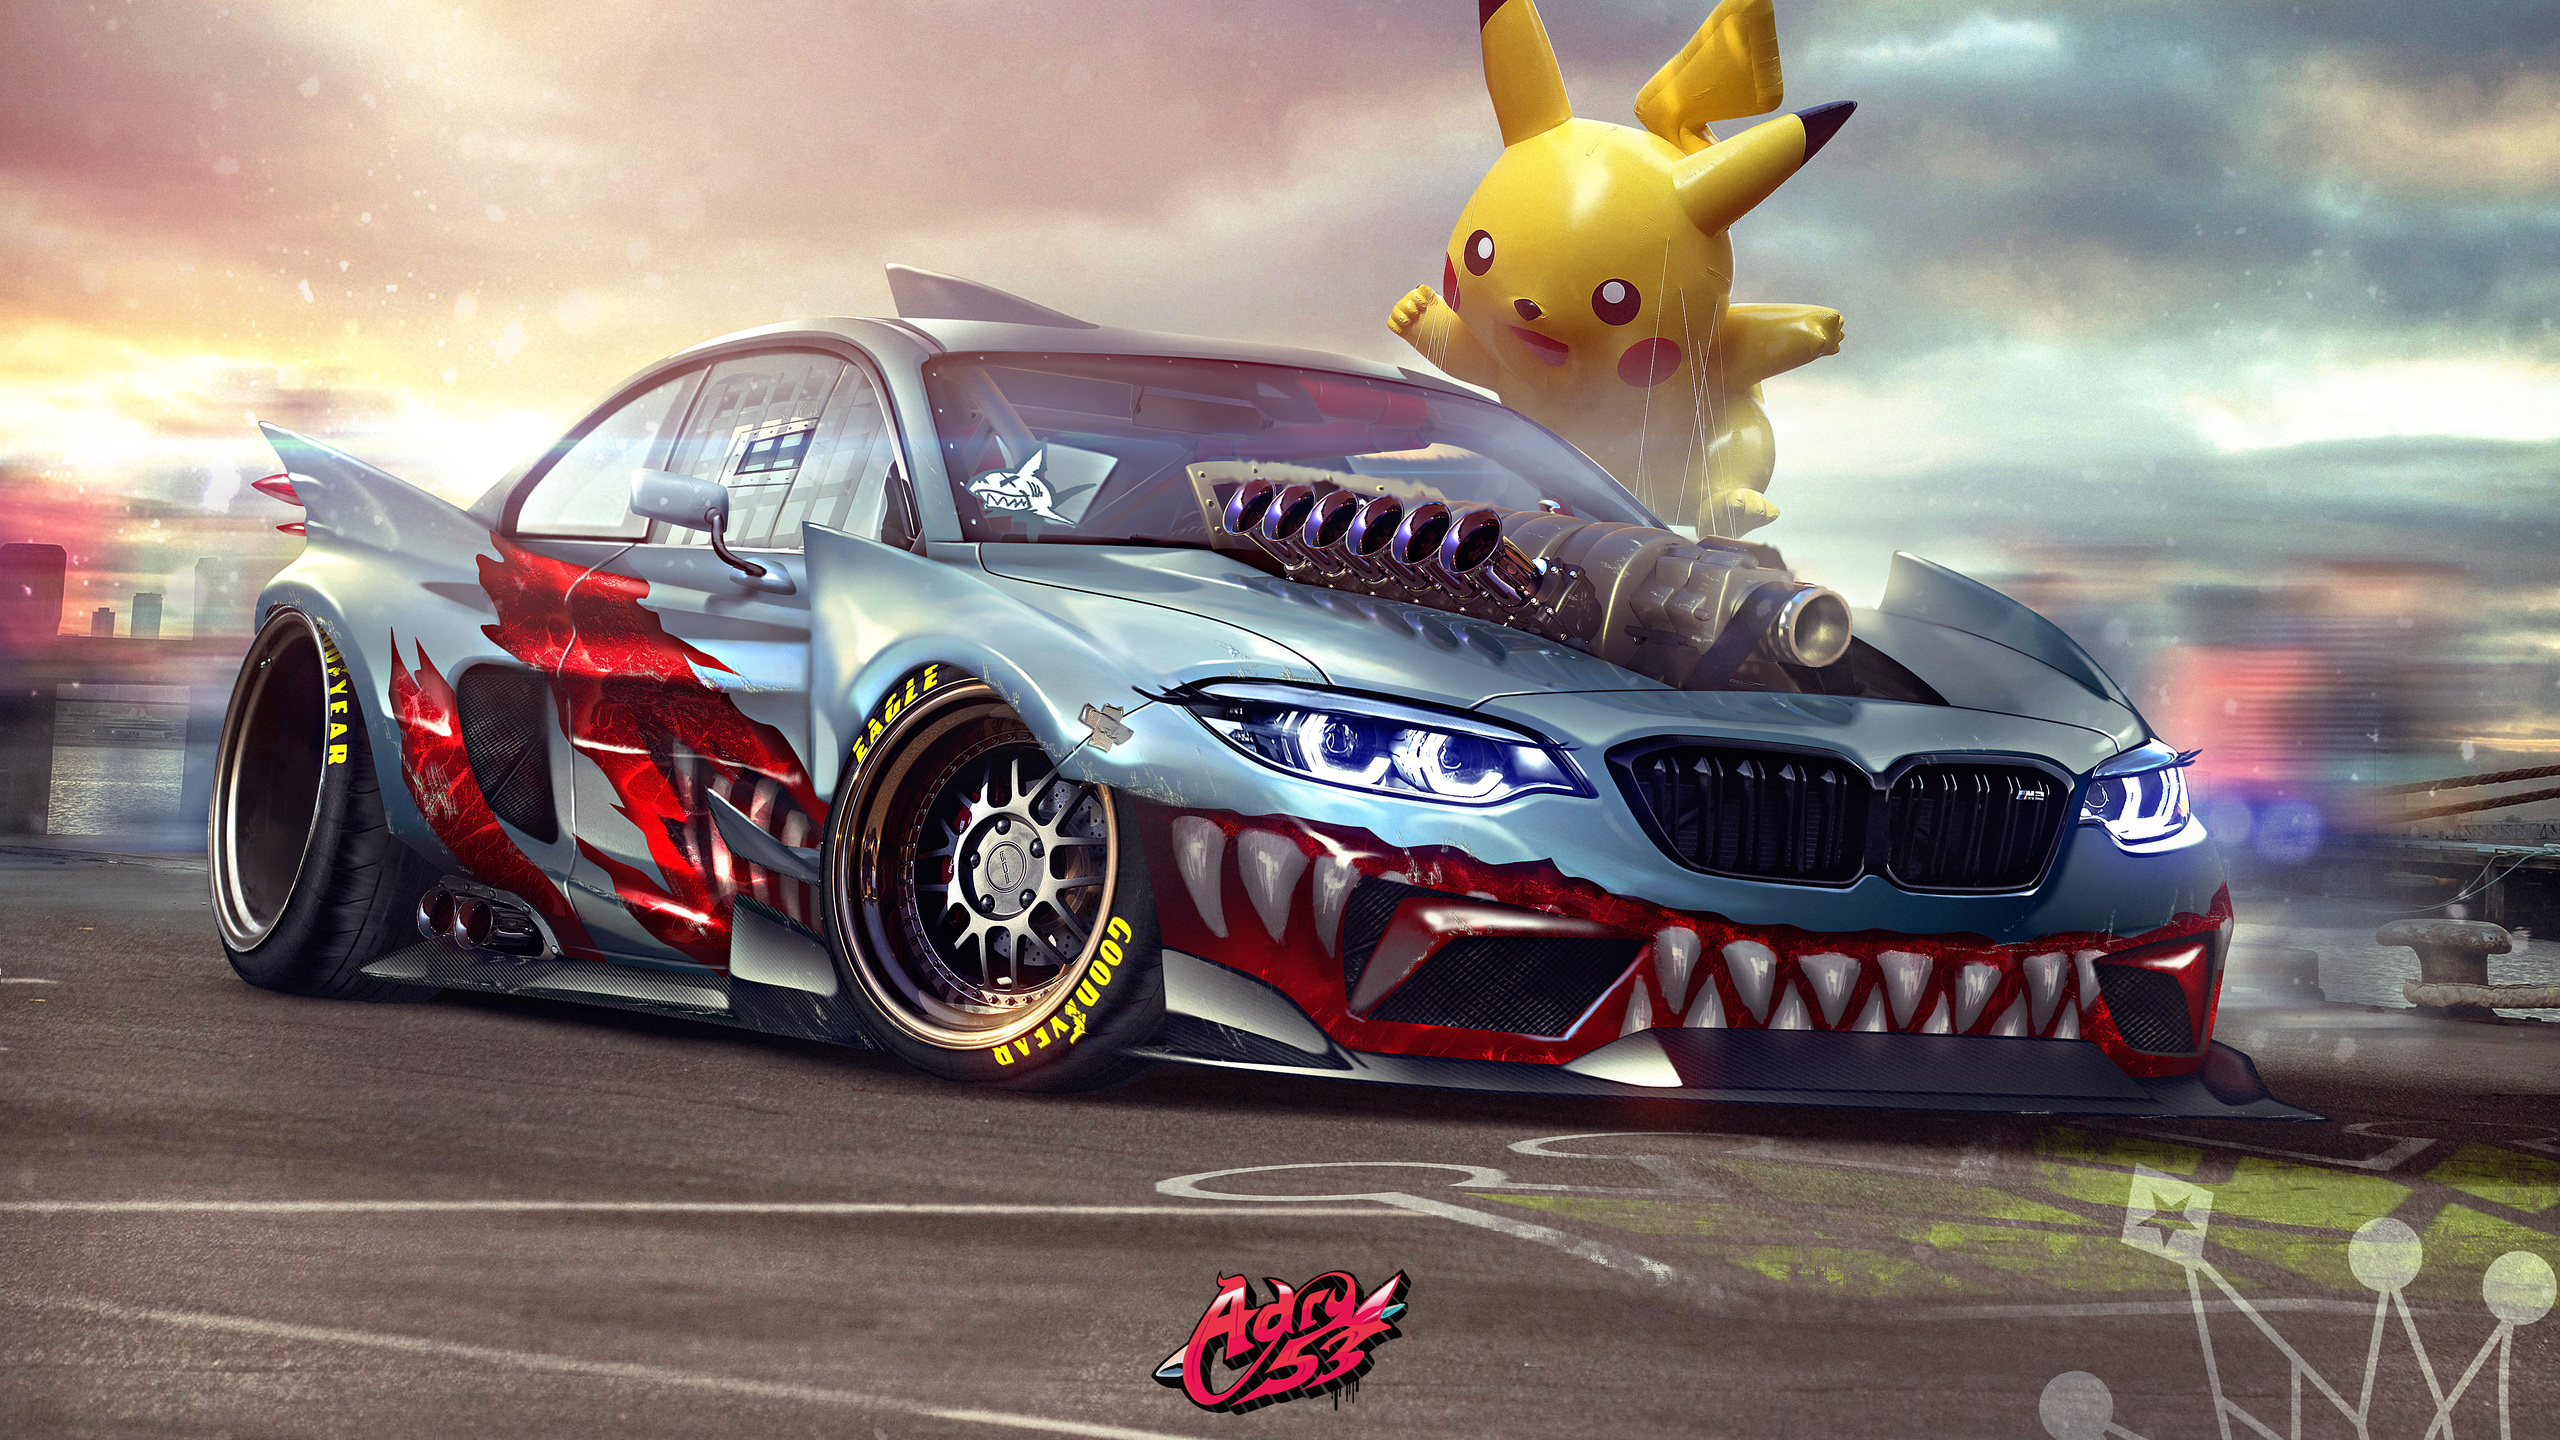 2560x1440 bmw m2 supercharged pokemon 1440p resolution hd 4k